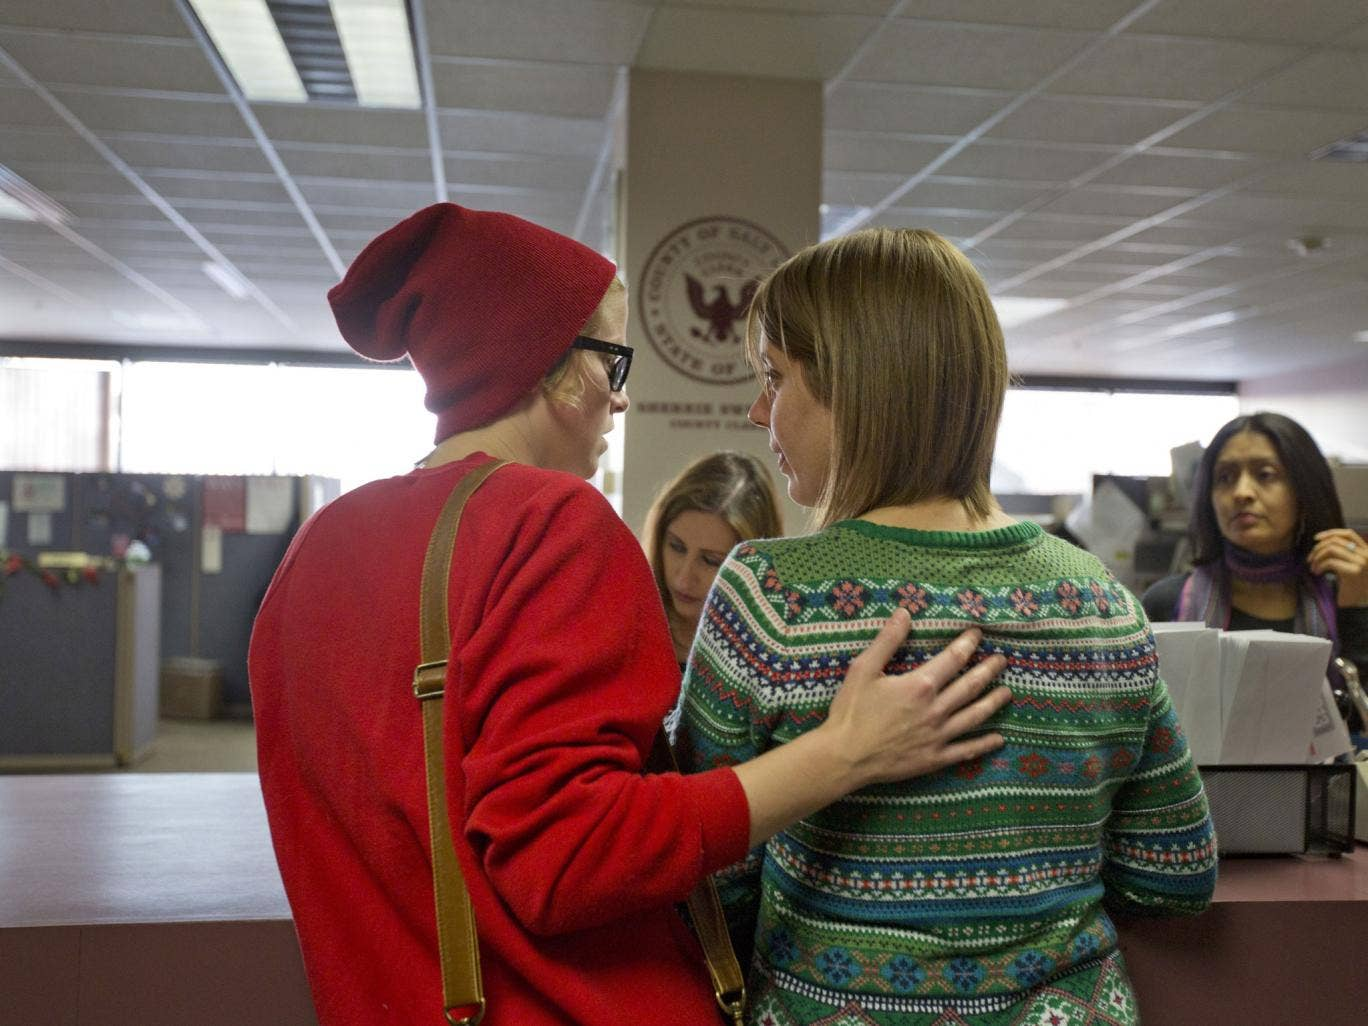 Samantha Christensen, left, and Elise Larsen apply for a marriage license in the Salt Lake County Clerk's Office. On Friday, Utah became the 18th state in the nation to allow gay marriage, however the state is seeking an urgent appeal